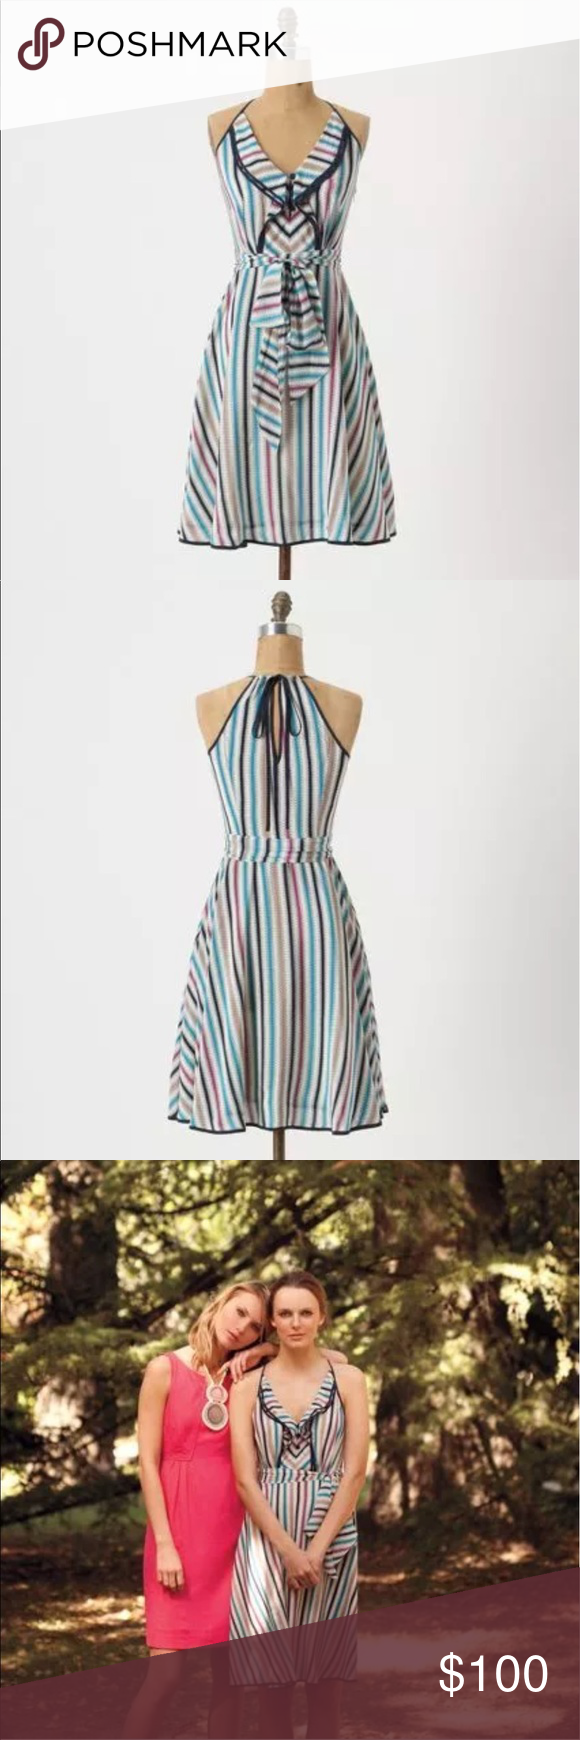 f6b86f992f076 Anthropologie Girls From Savoy Gull Wing Striped Gorgeous silk dress, great  for Mother's Day and summer weddings. Only worn once and dry cleaned.